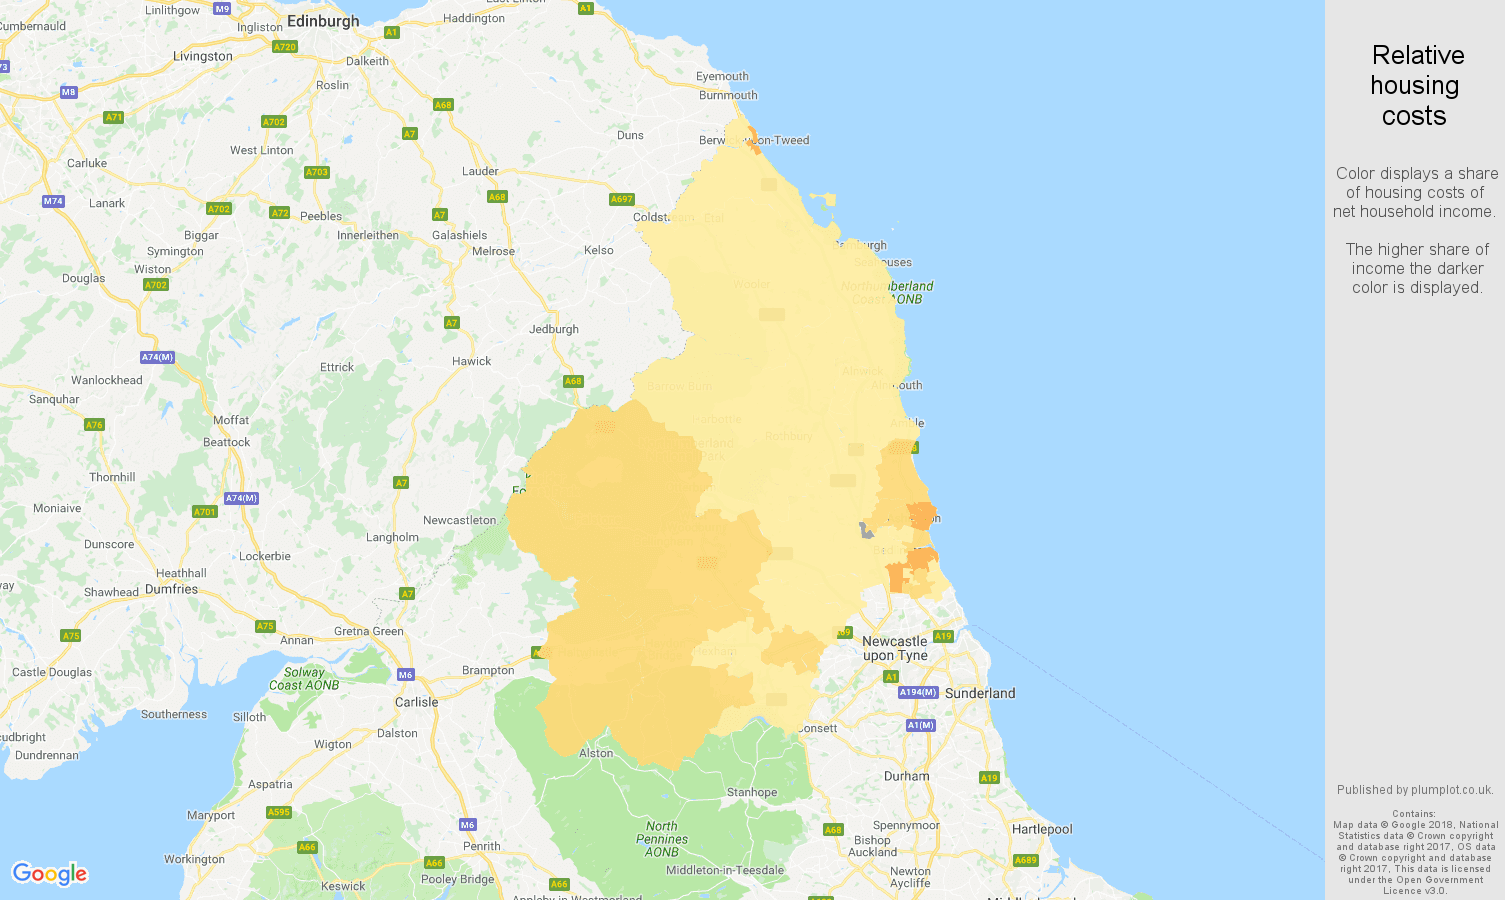 Northumberland relative housing costs map